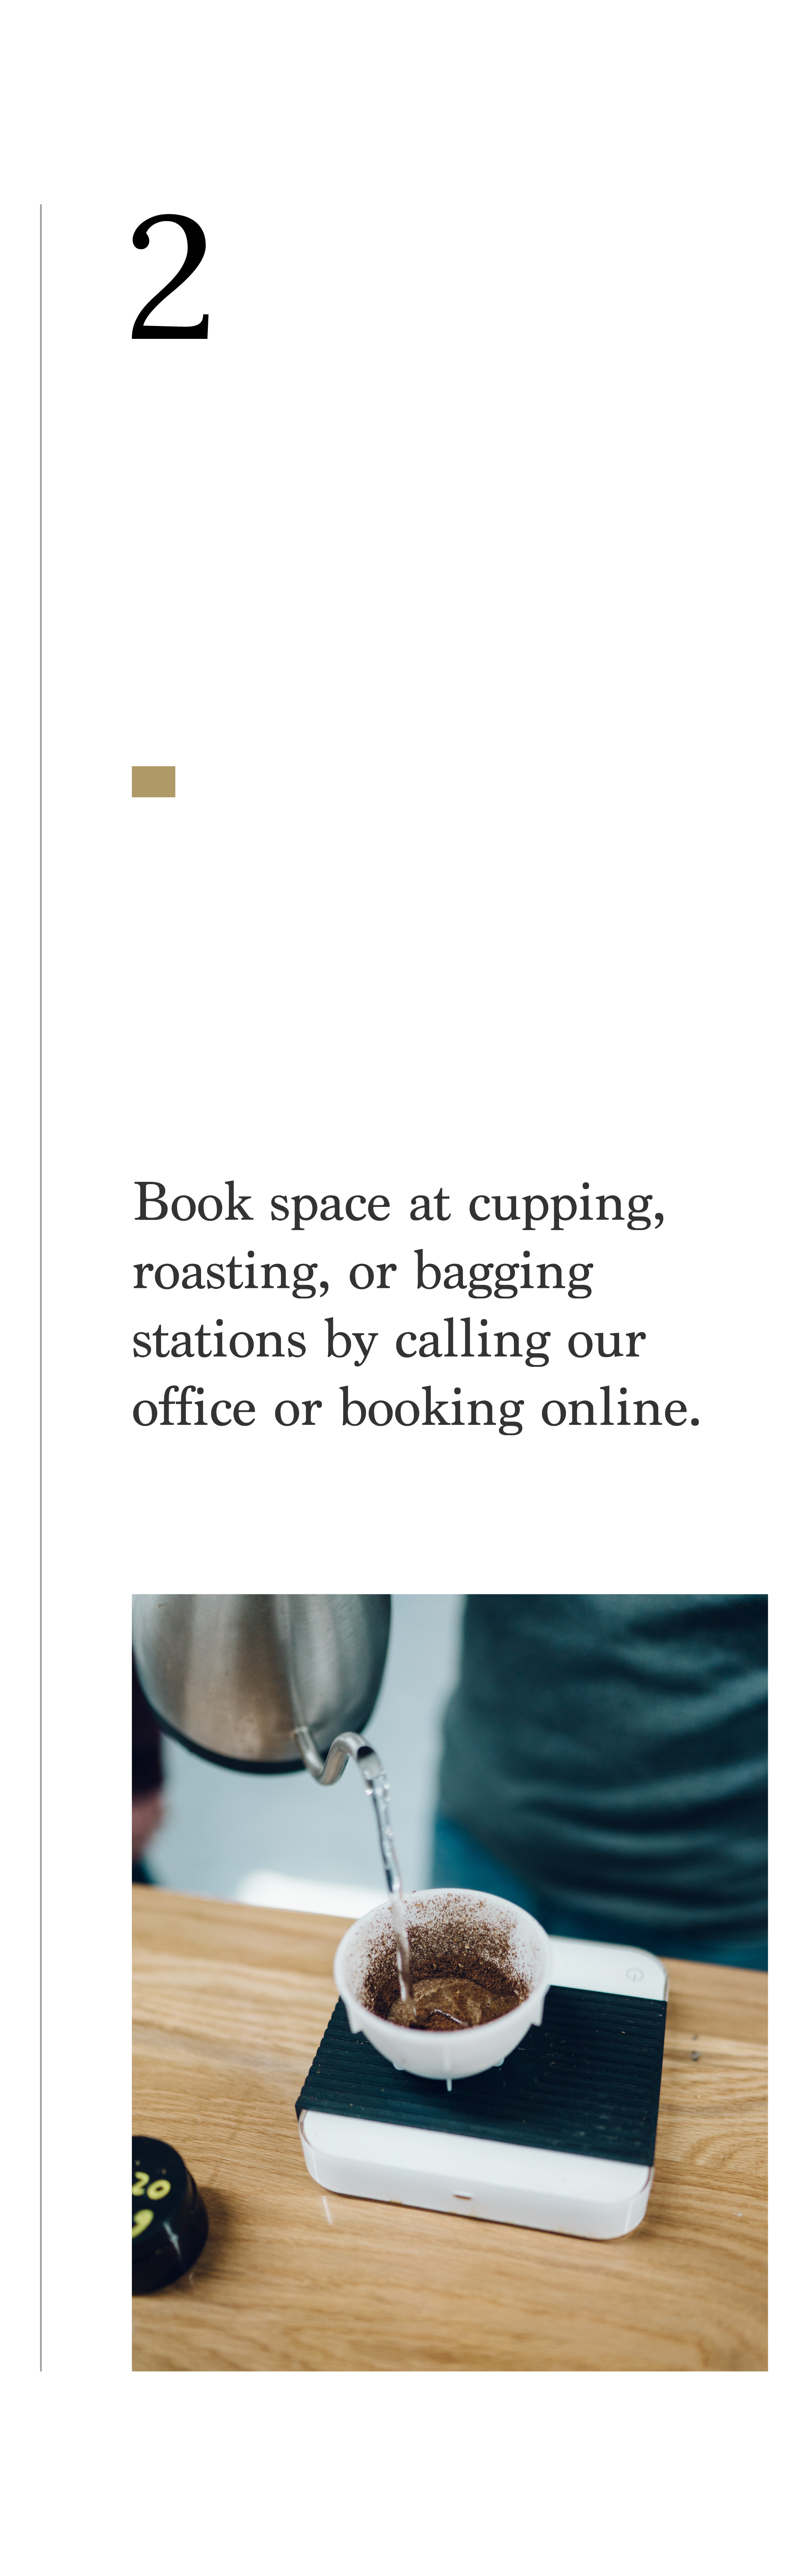 Step 2- Book space at cupping, roasting, or bagging stations by calling our office or booking online.